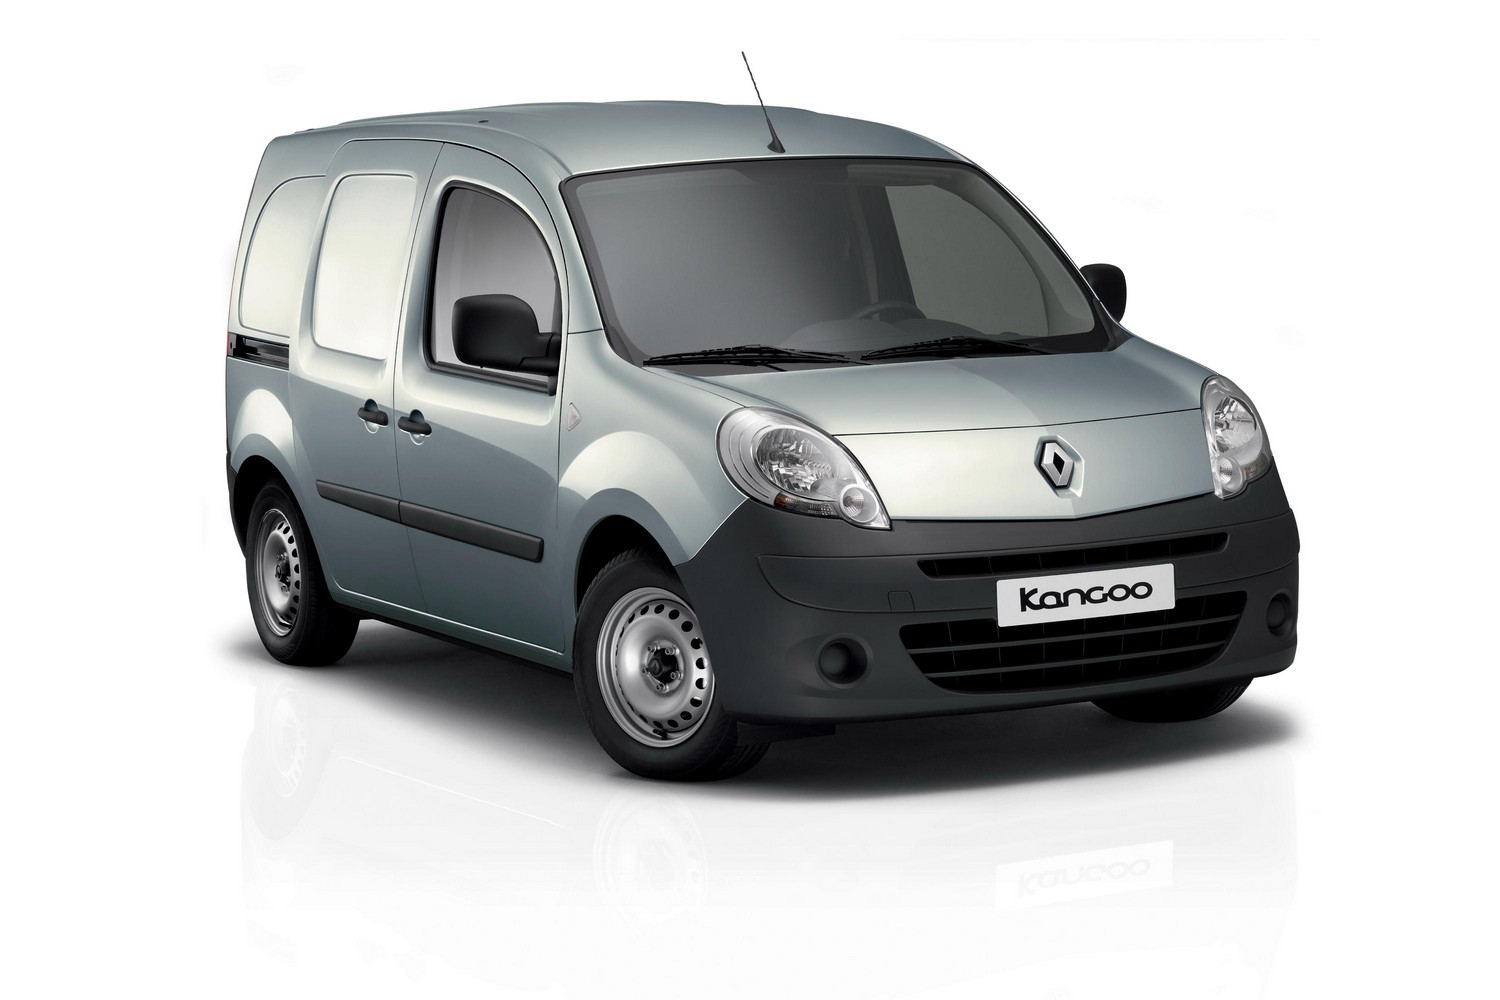 nouvelle renault kangoo ii express toutes les infos et 23 photos hd. Black Bedroom Furniture Sets. Home Design Ideas